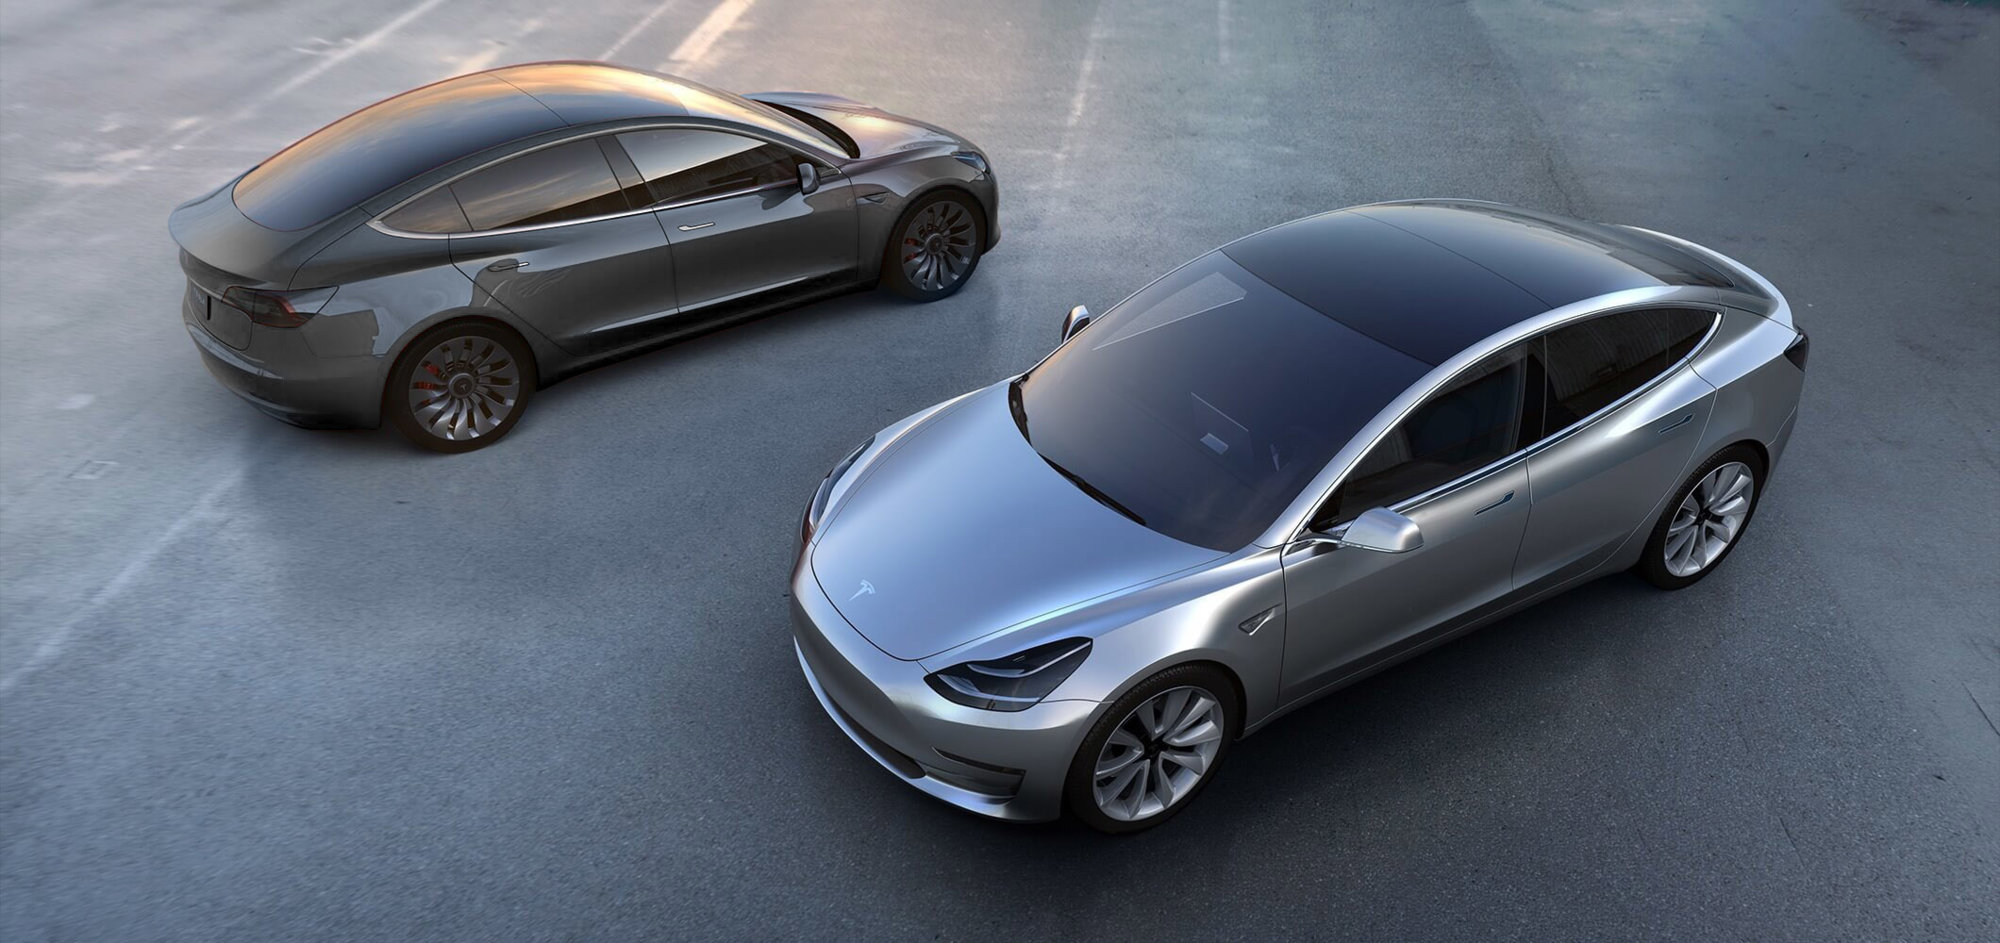 model3_colorMockup_darkGrey_v01.jpg